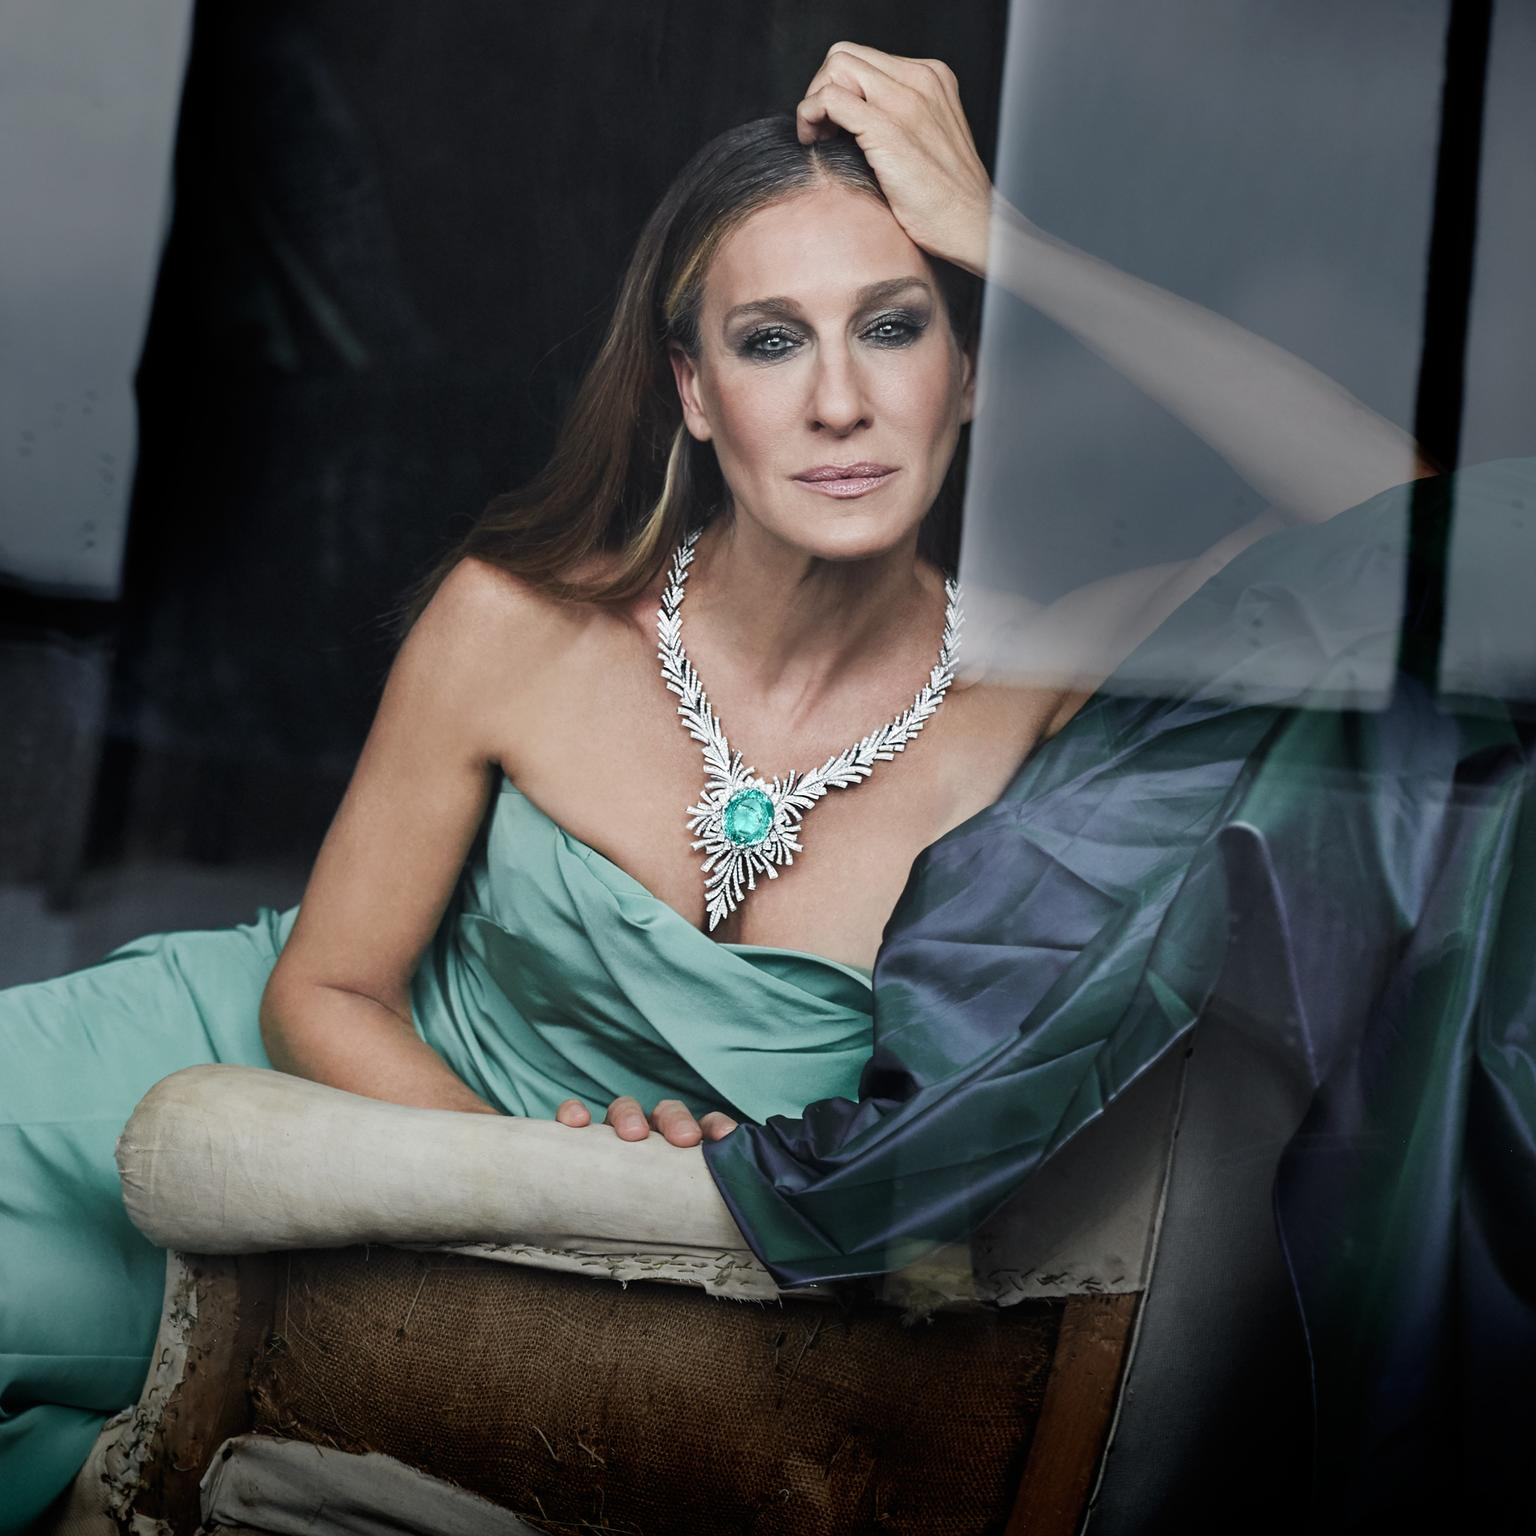 Sarah Jessica Parker wearing one of Kat Florence's largest creations to date, a 98.50 carat Paraiba tourmaline necklace